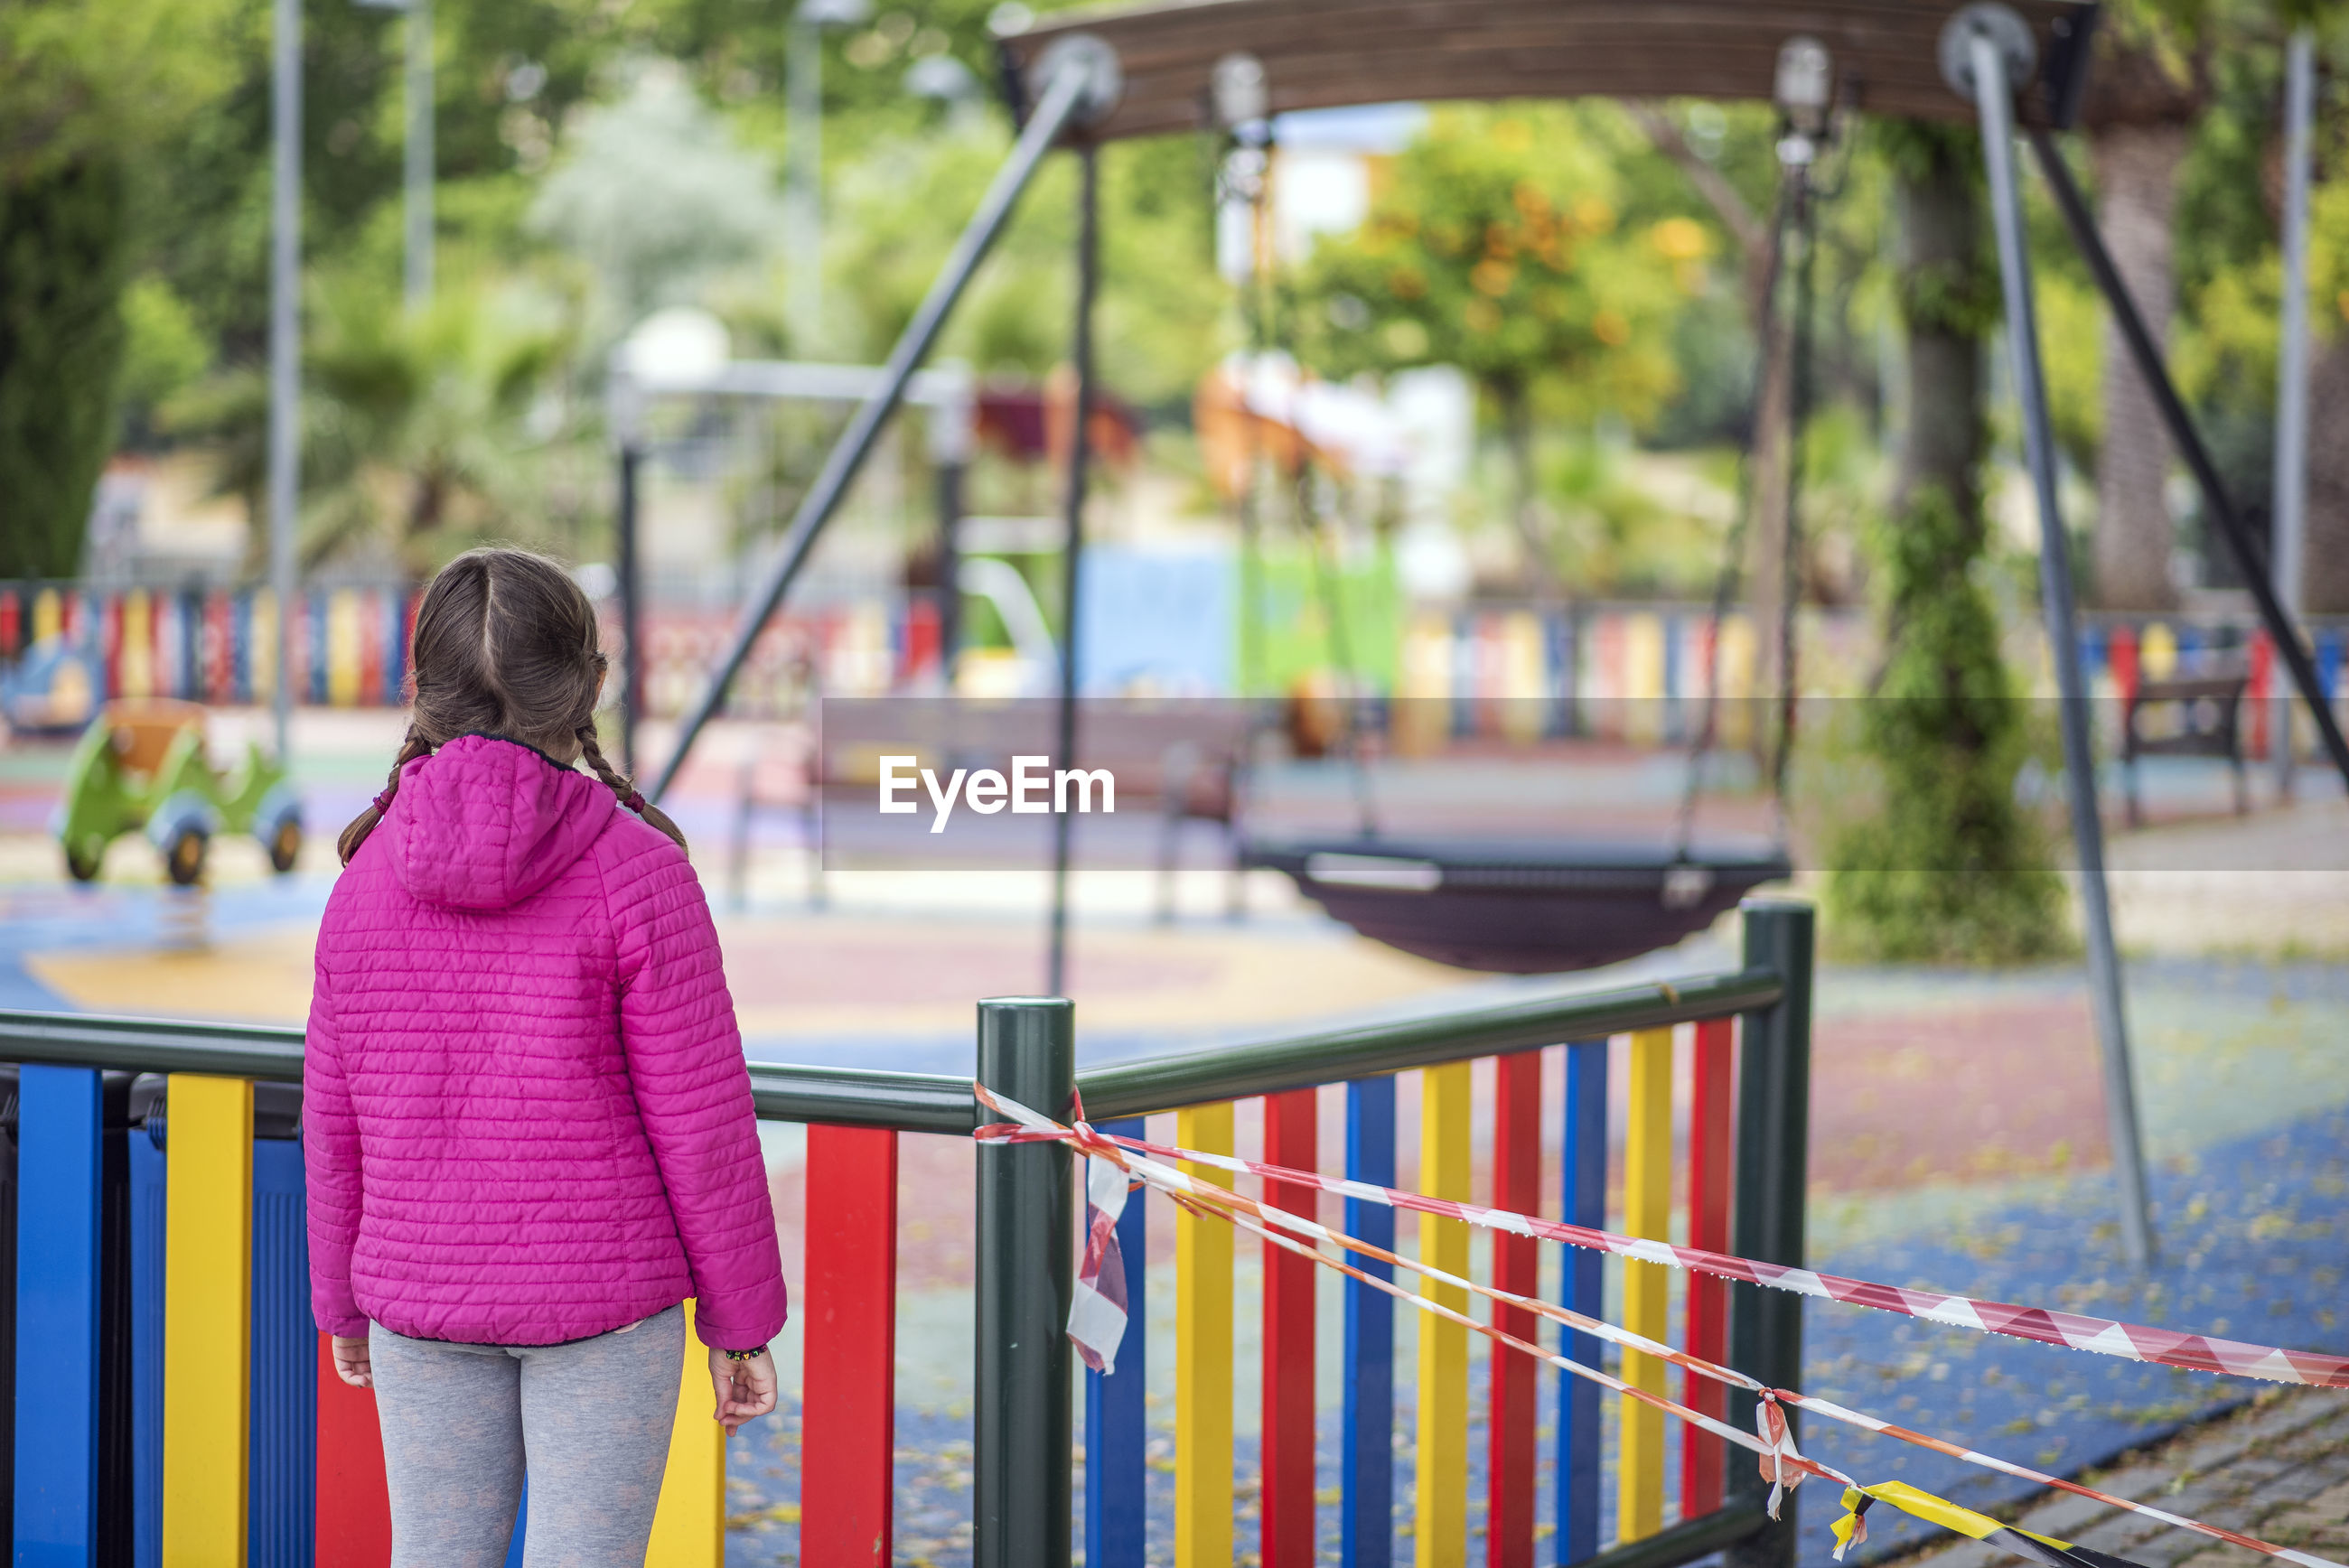 REAR VIEW OF WOMAN STANDING BY RAILING AGAINST PLAYGROUND